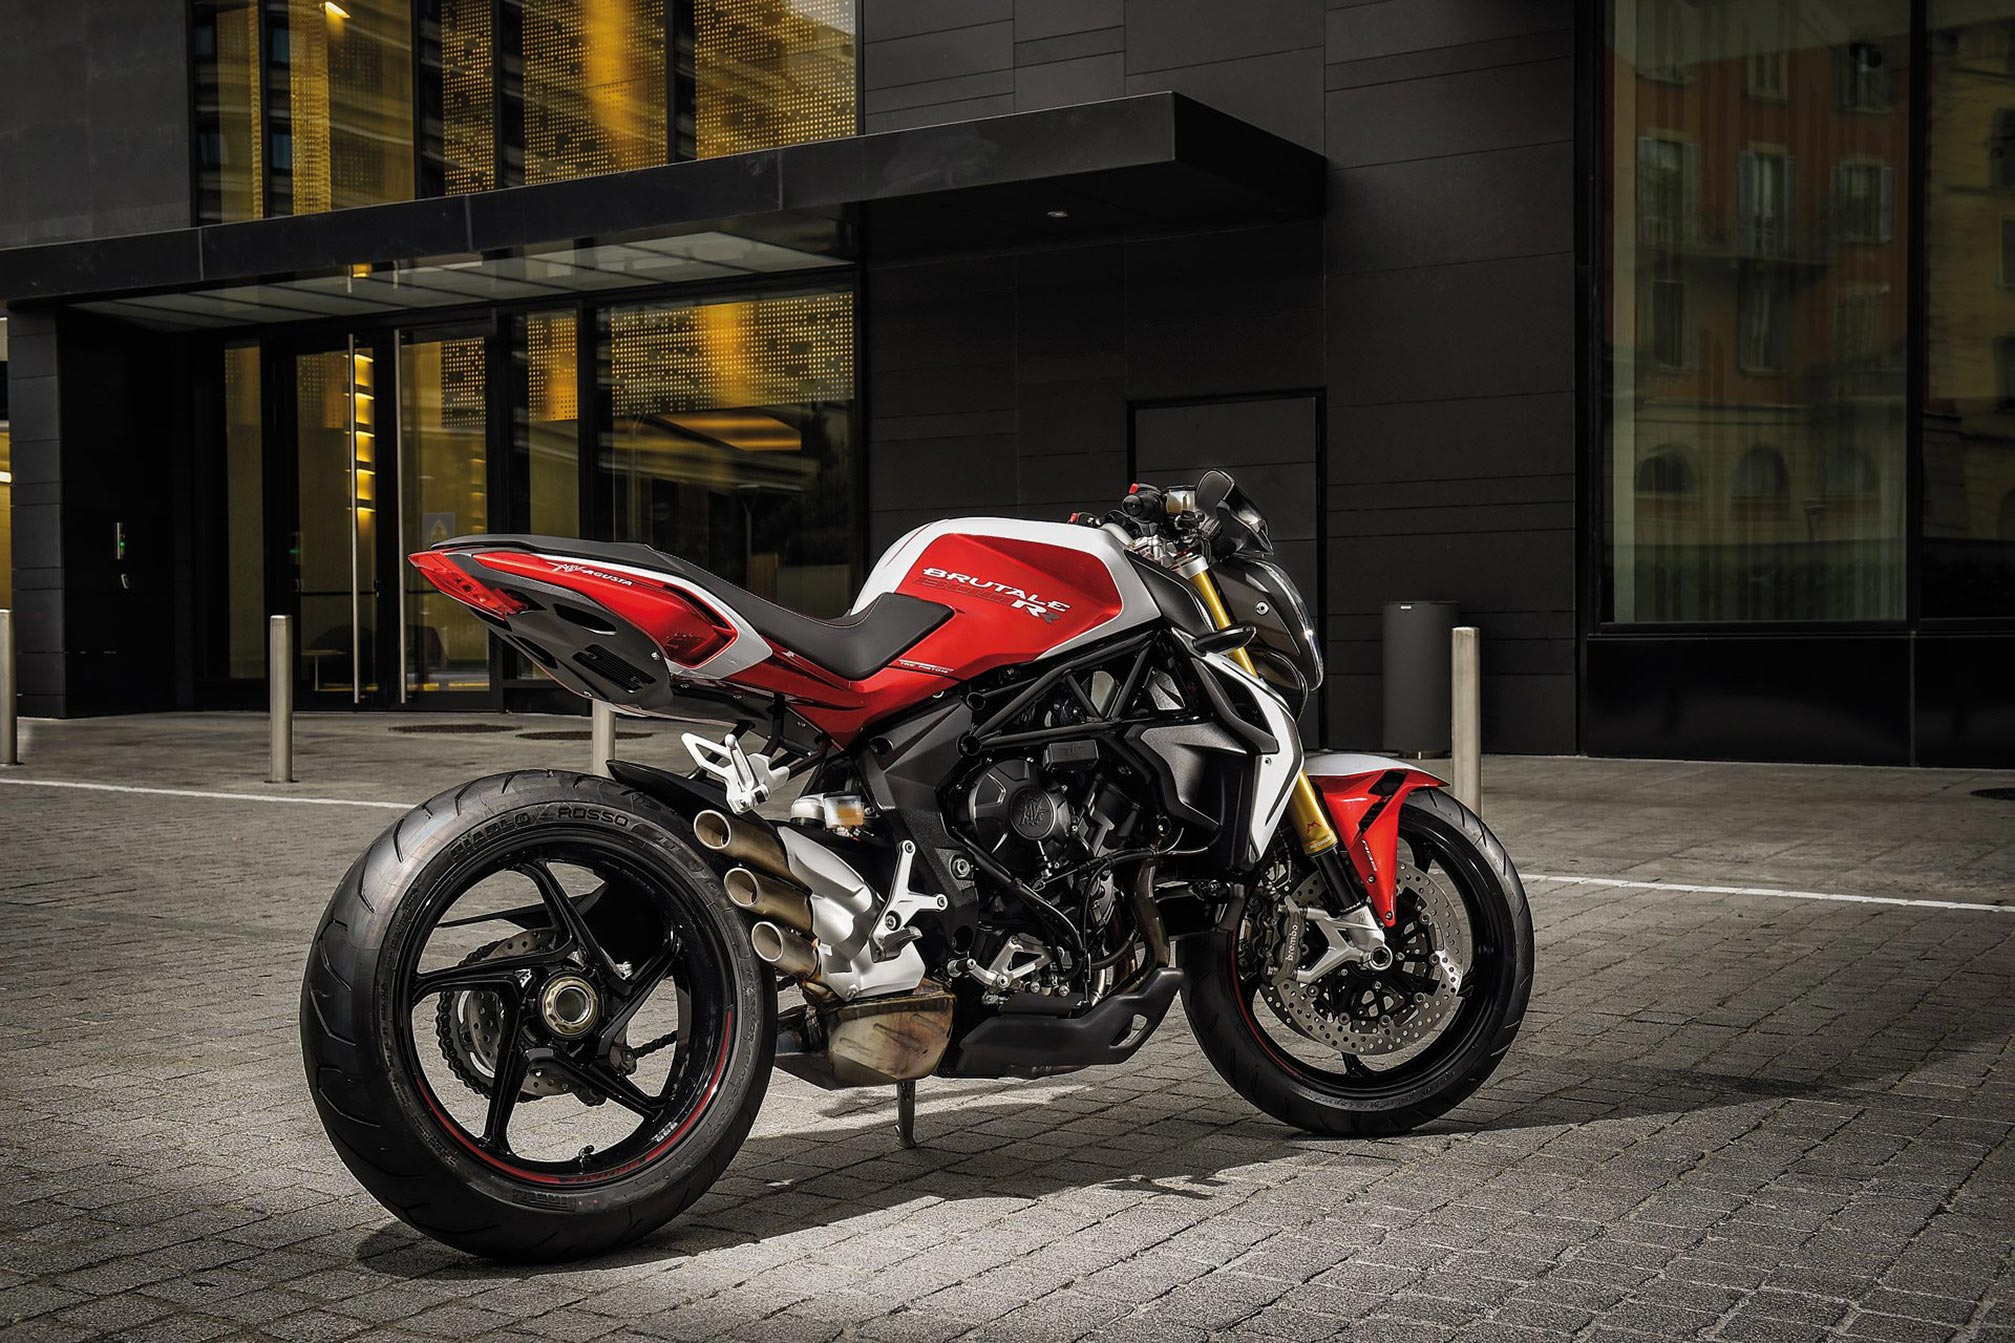 2016 MV Agusta Brutale 800 Specs and Top Speed